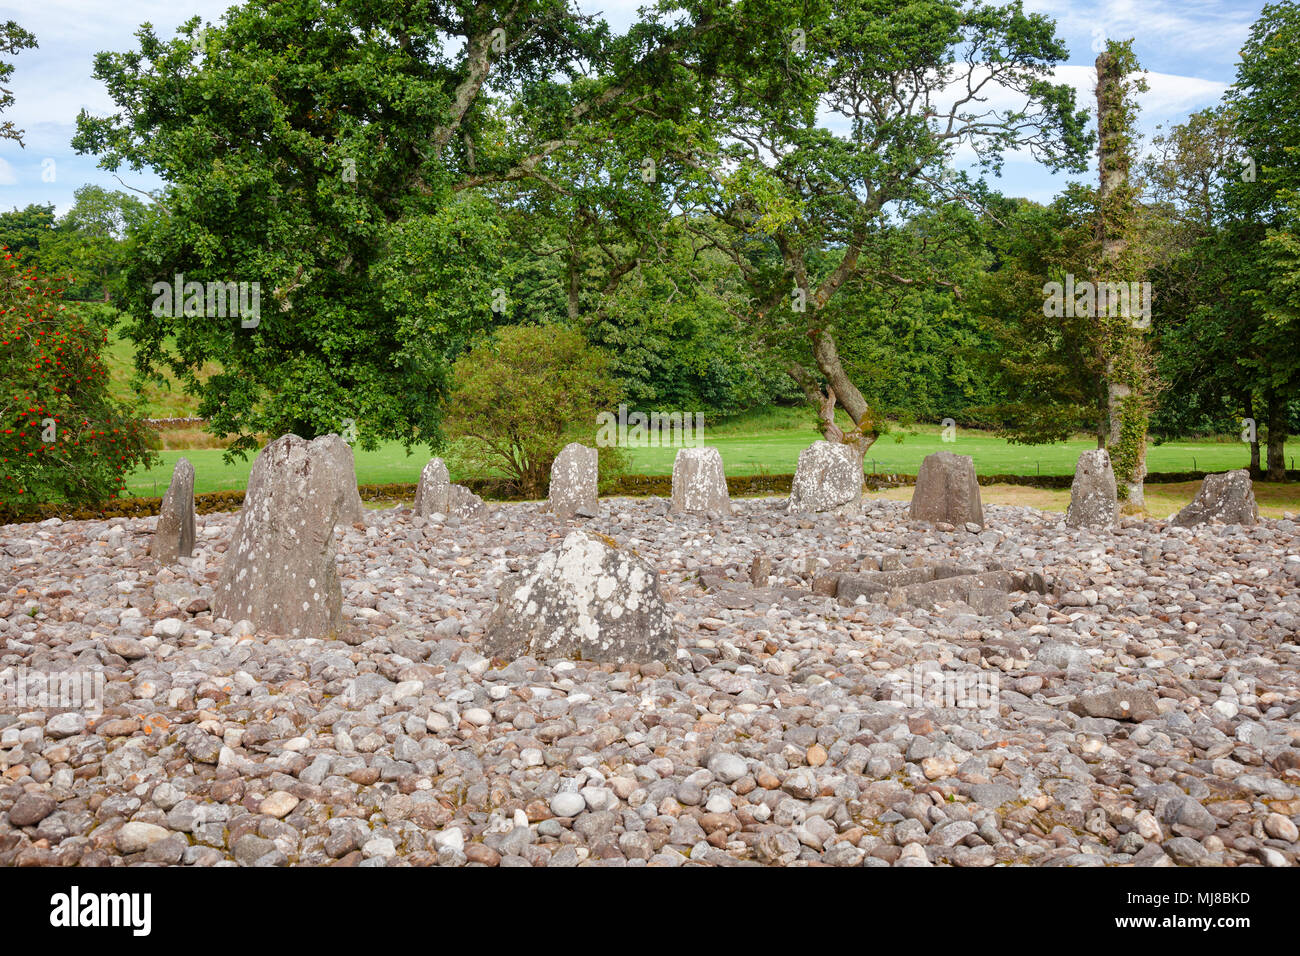 Southern circle with ring of 13 standing stones at Temple Wood (Half Moon Wood) prehistoric site  Kilmartin Glen near Kintyre, Argyll and Bute, Scotla Stock Photo